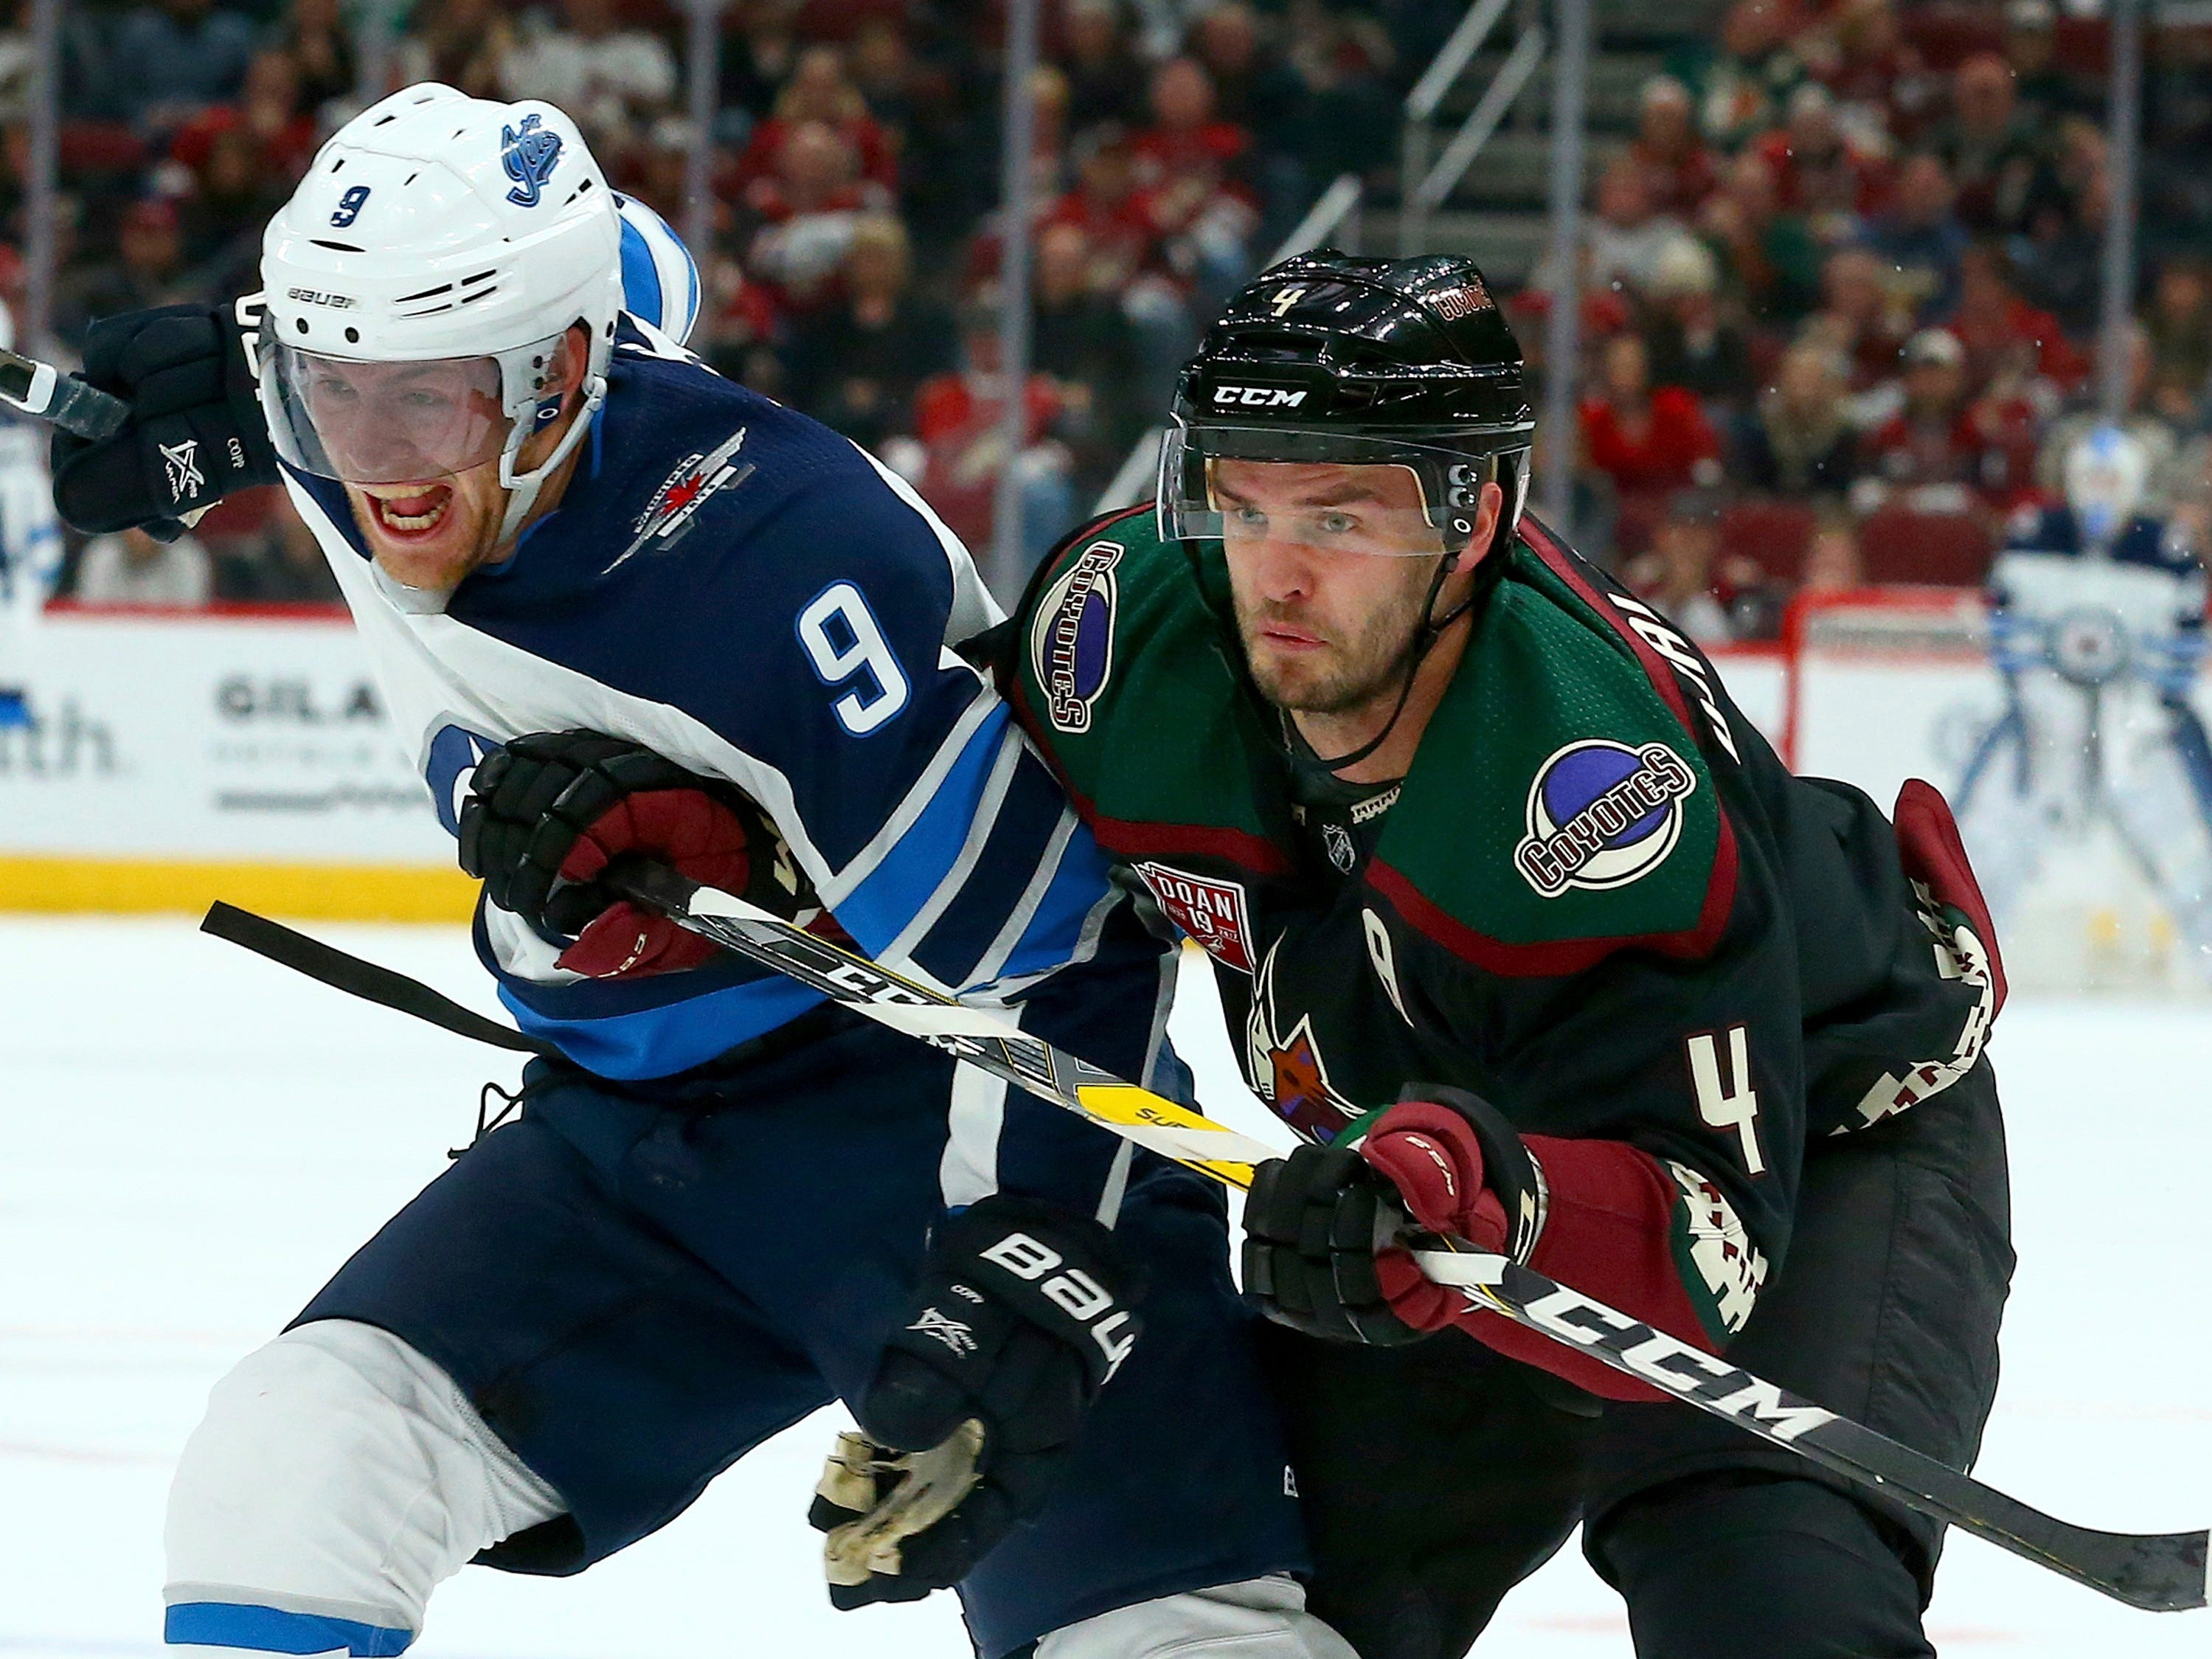 Arizona Coyotes defenseman Niklas Hjalmarsson (4) and Winnipeg Jets center Andrew Copp (9) tangles with one another during the first period of an NHL hockey game Sunday, Feb. 24, 2019, in Glendale, Ariz.